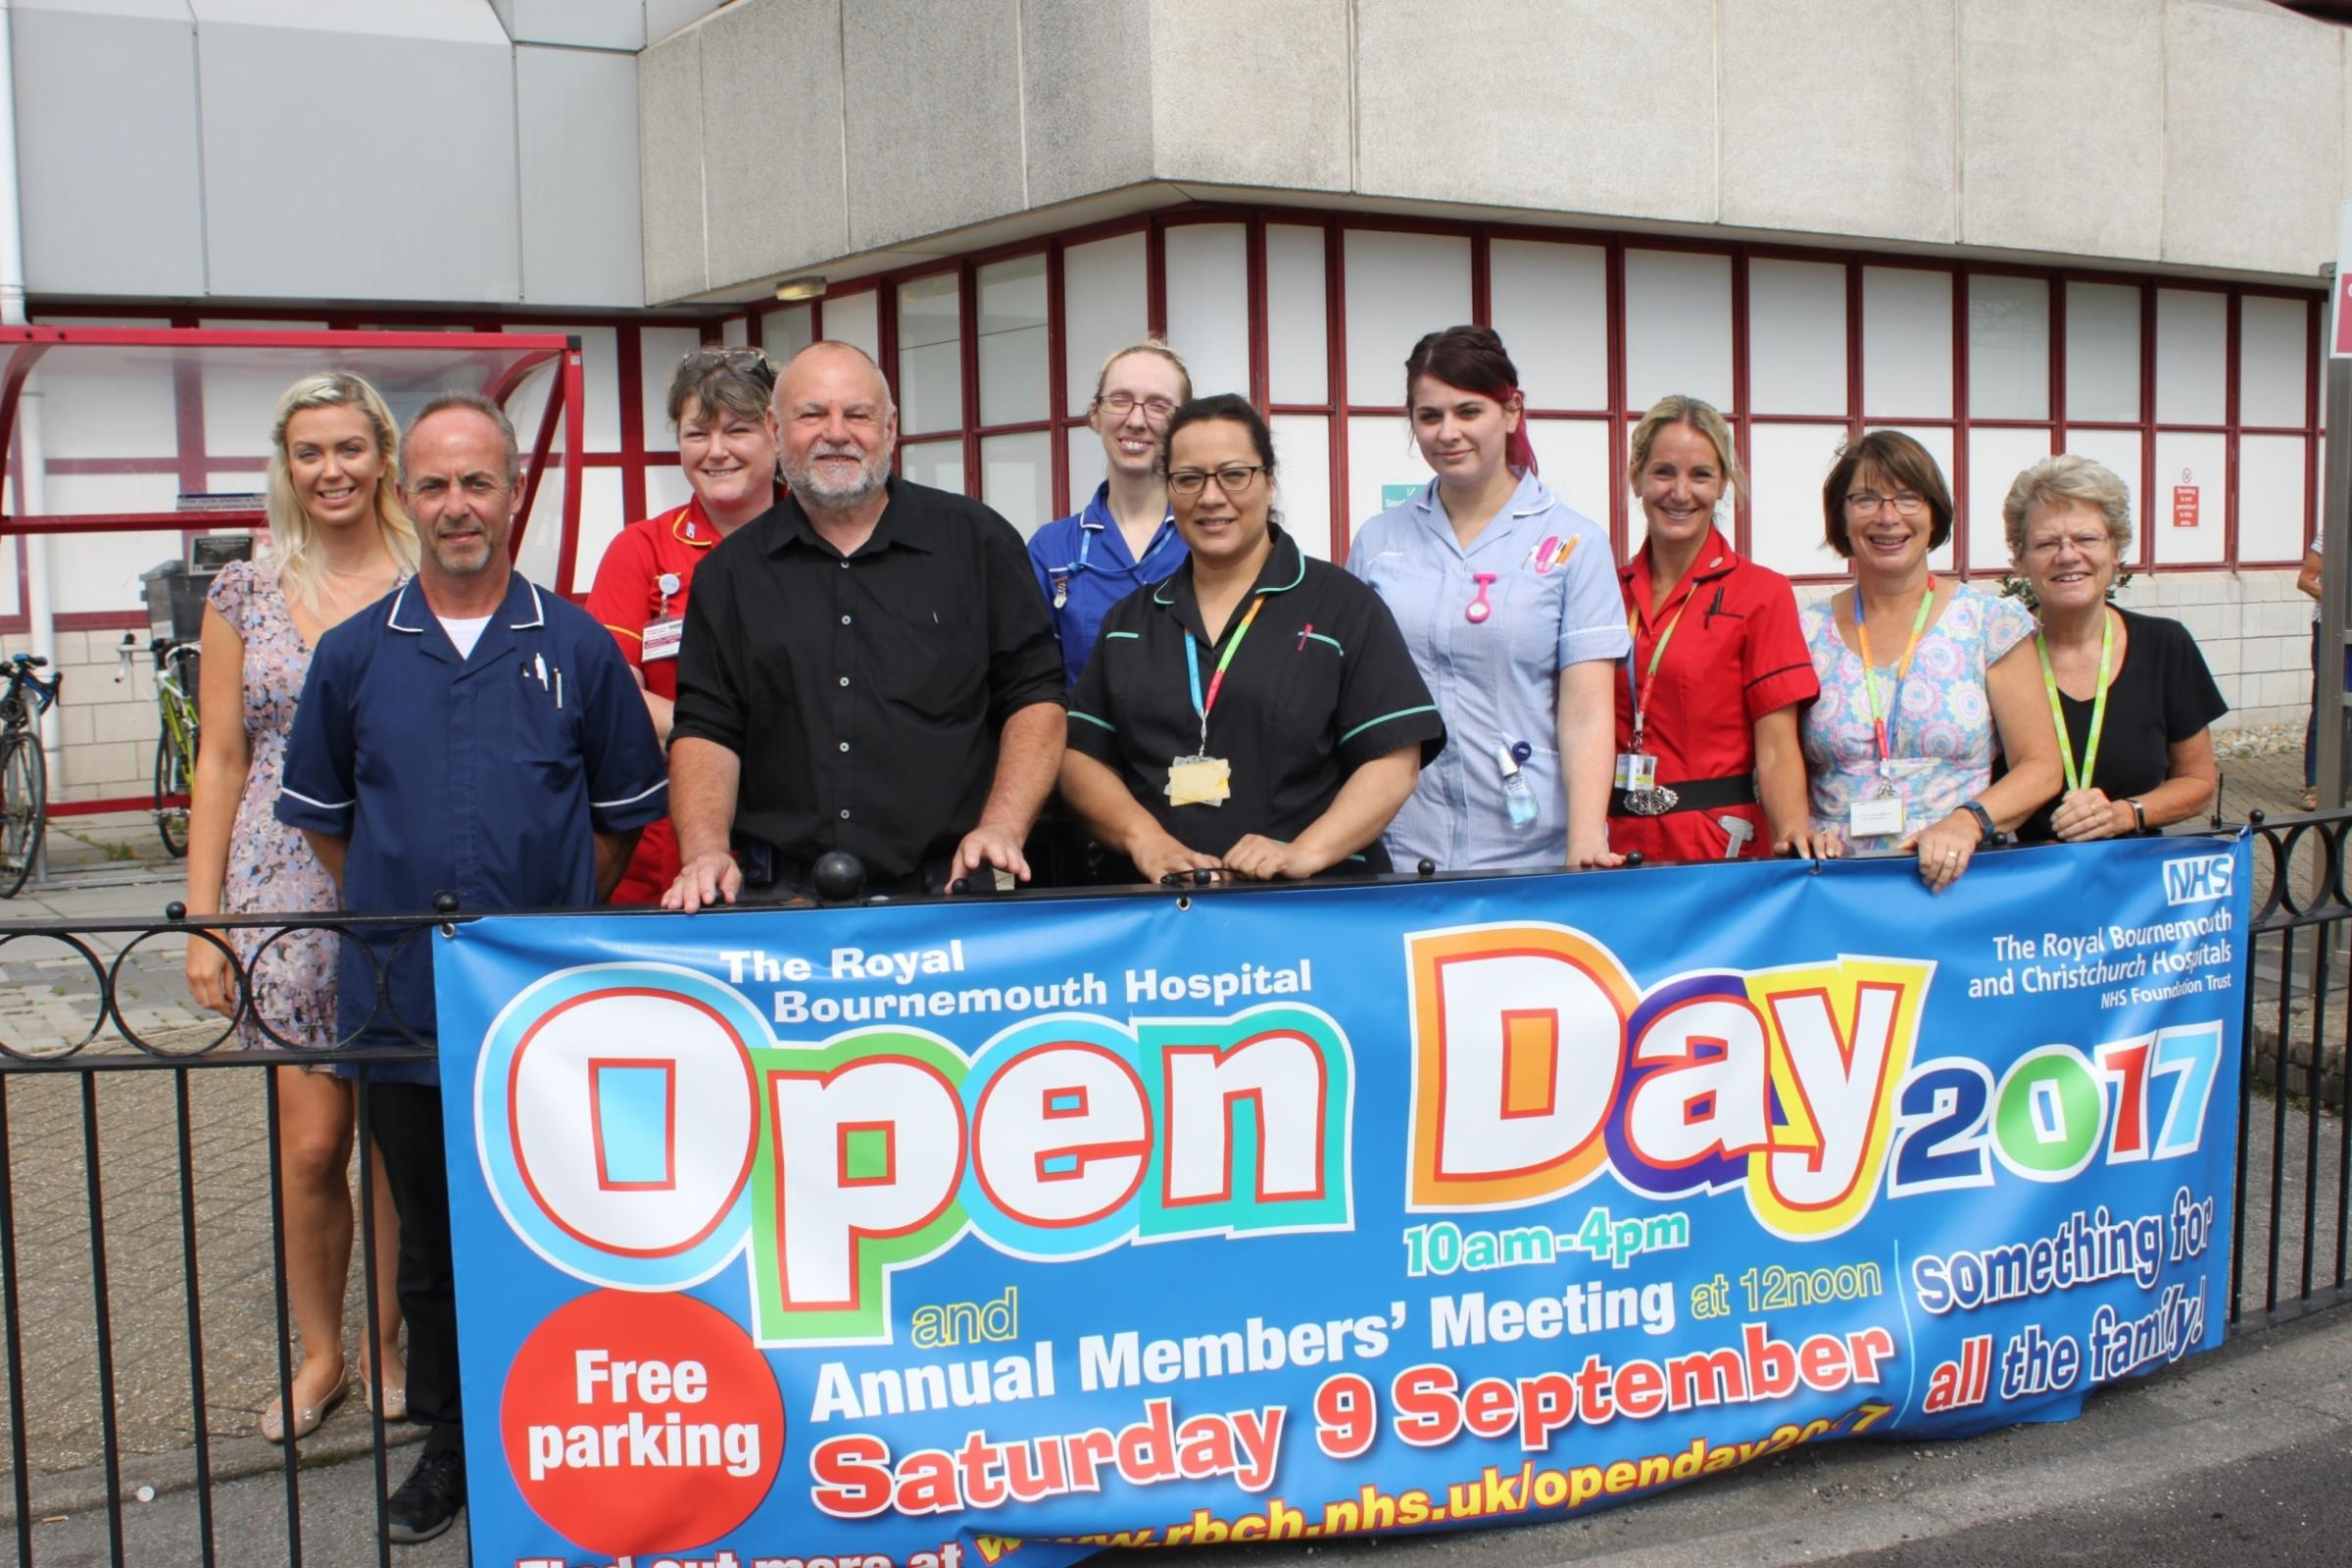 Royal Bournemouth Hospital staff invite the public to the annual open day